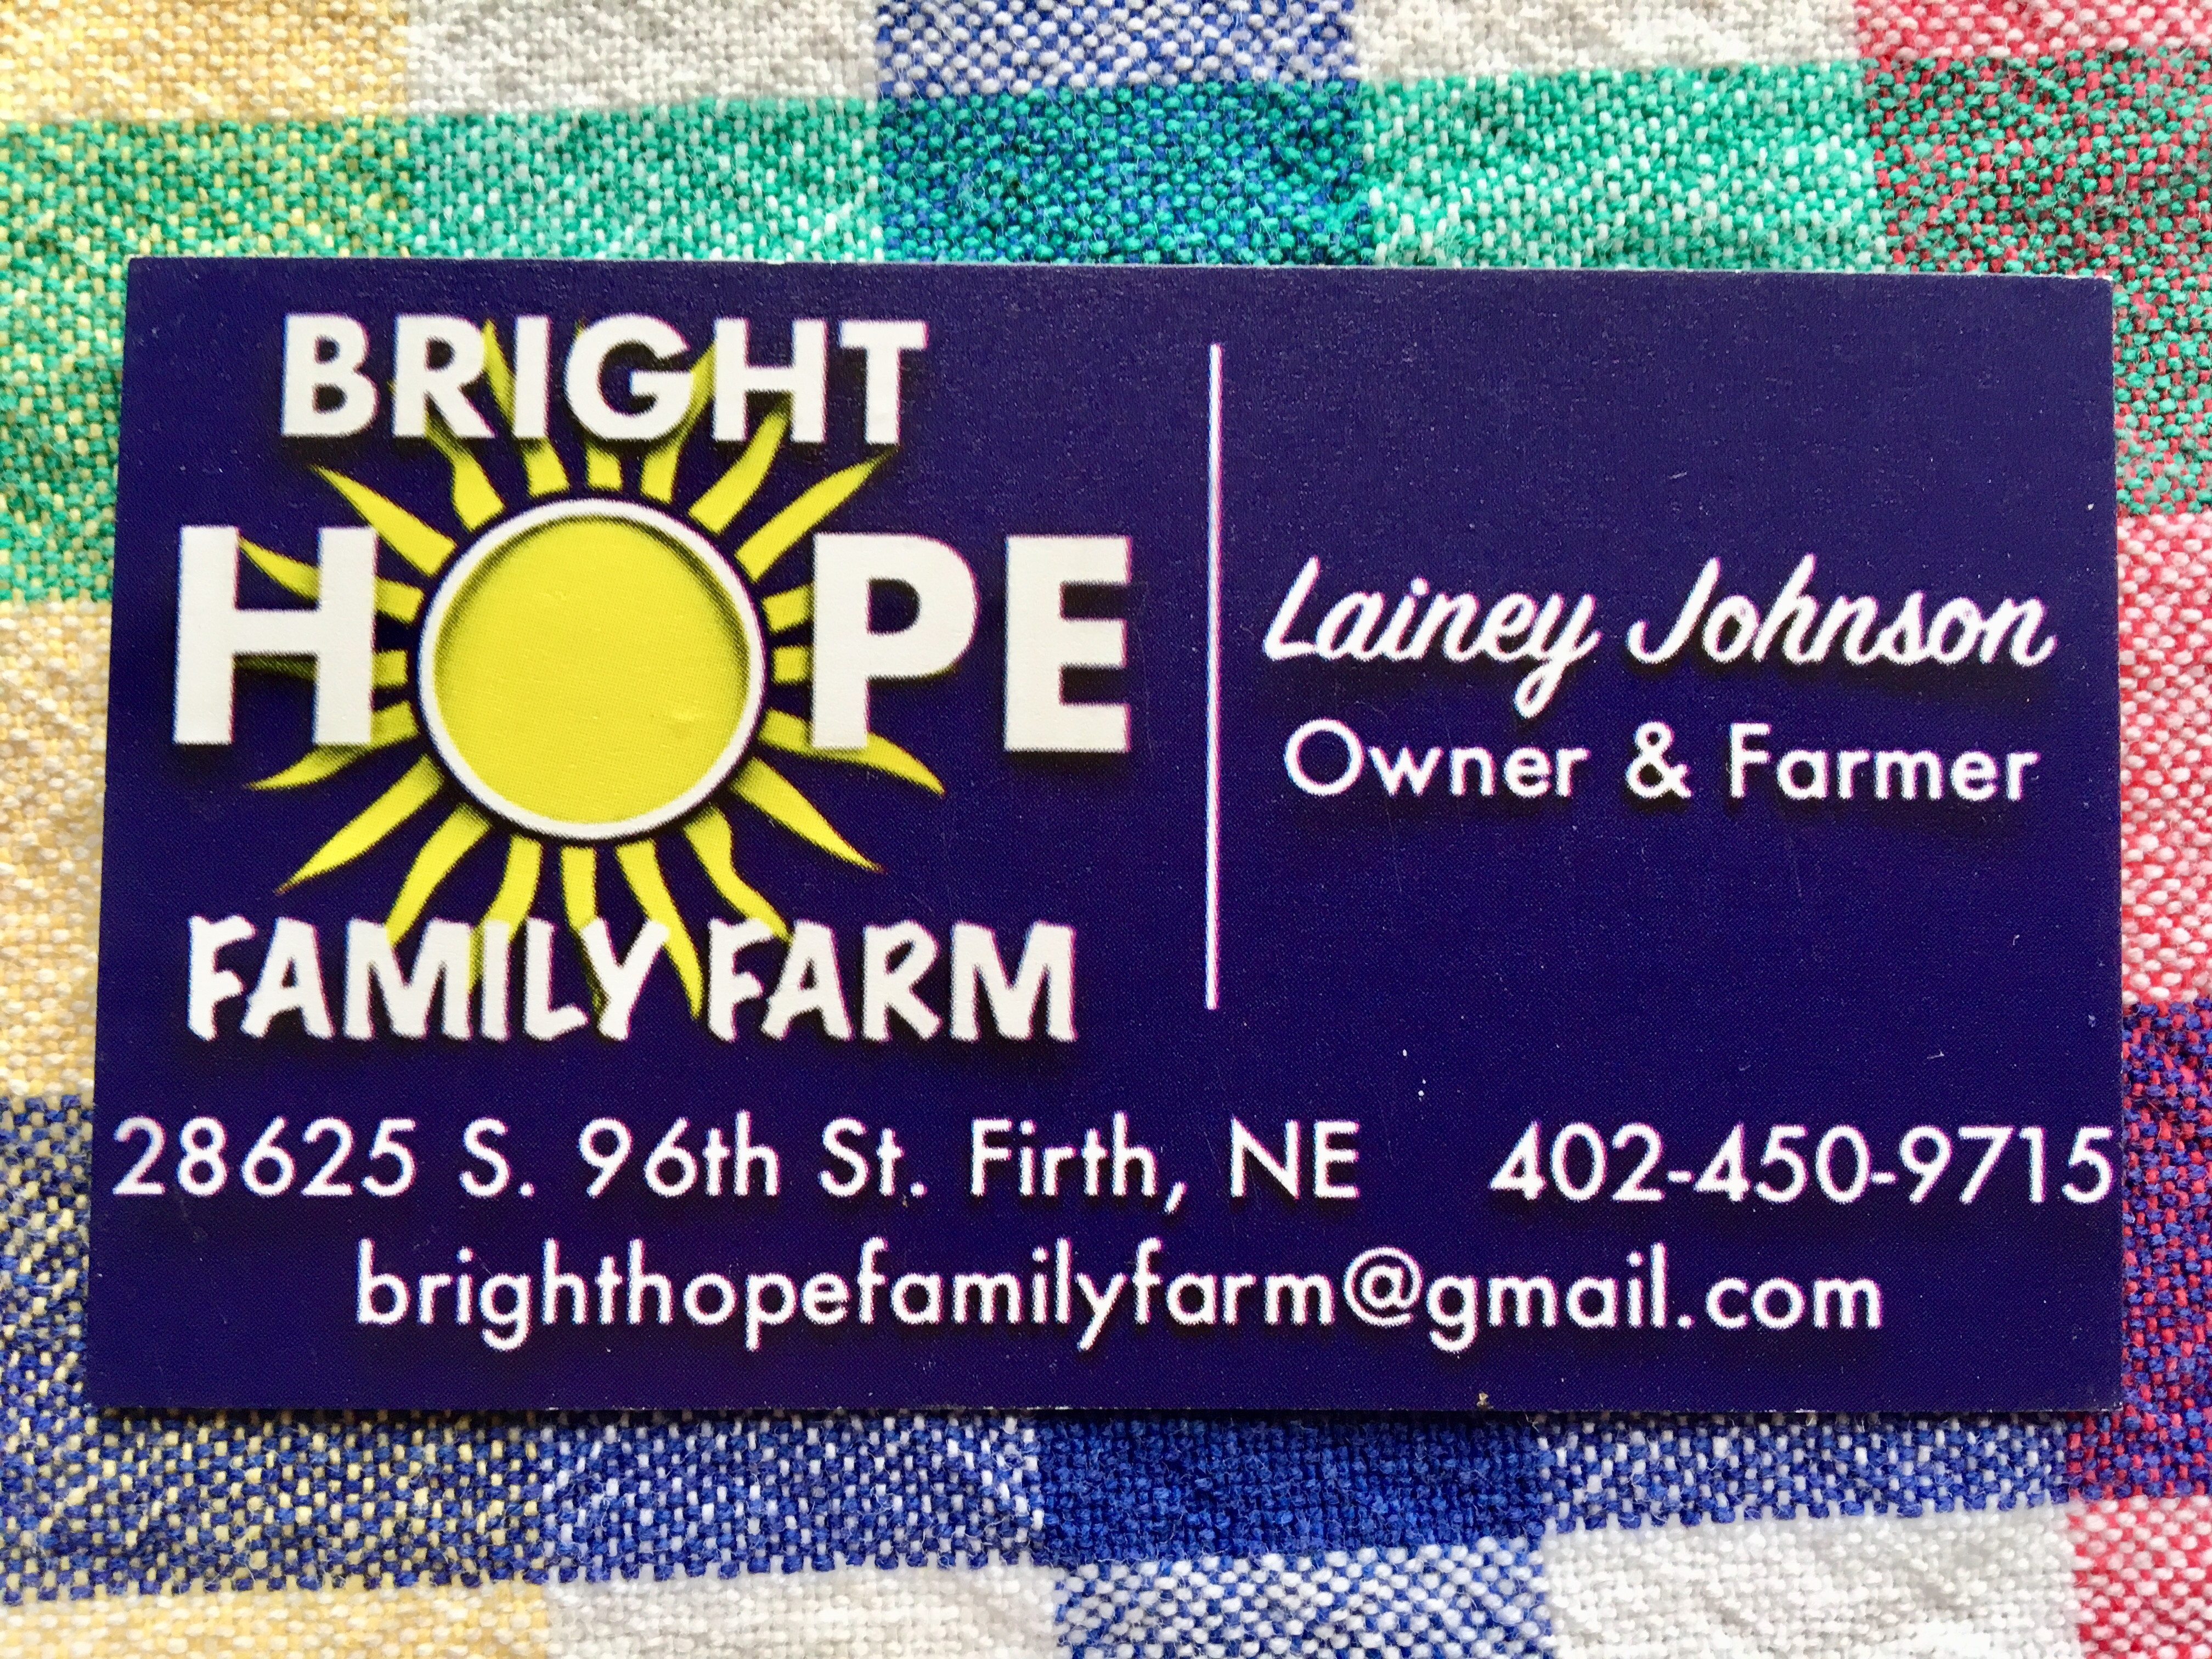 Bright Hope Family Farm